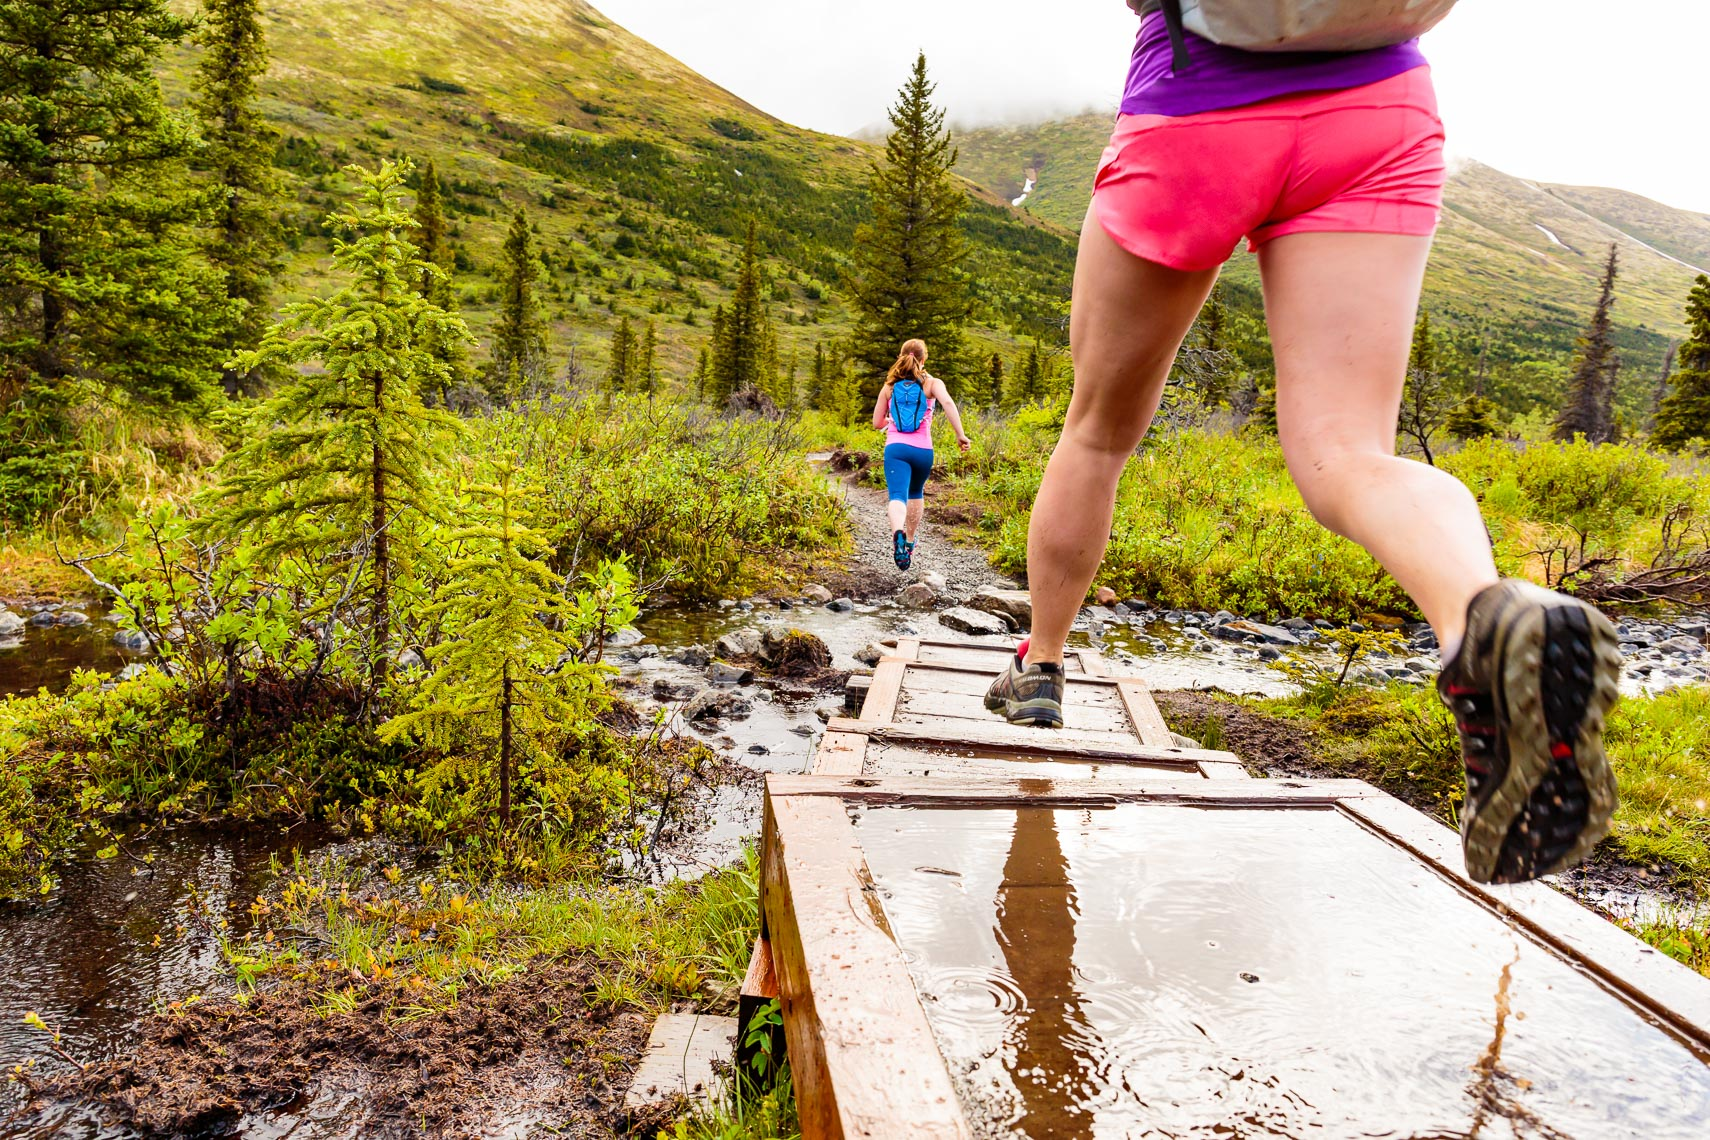 Alaska Trail Run Wet Boardwalk | Michael DeYoung